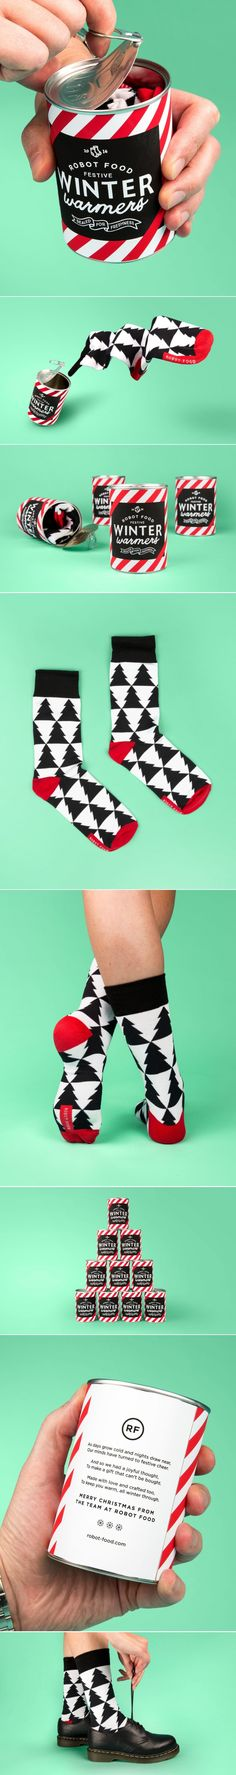 Who knew socks could be this festive? — The Dieline - Branding & Packaging Design